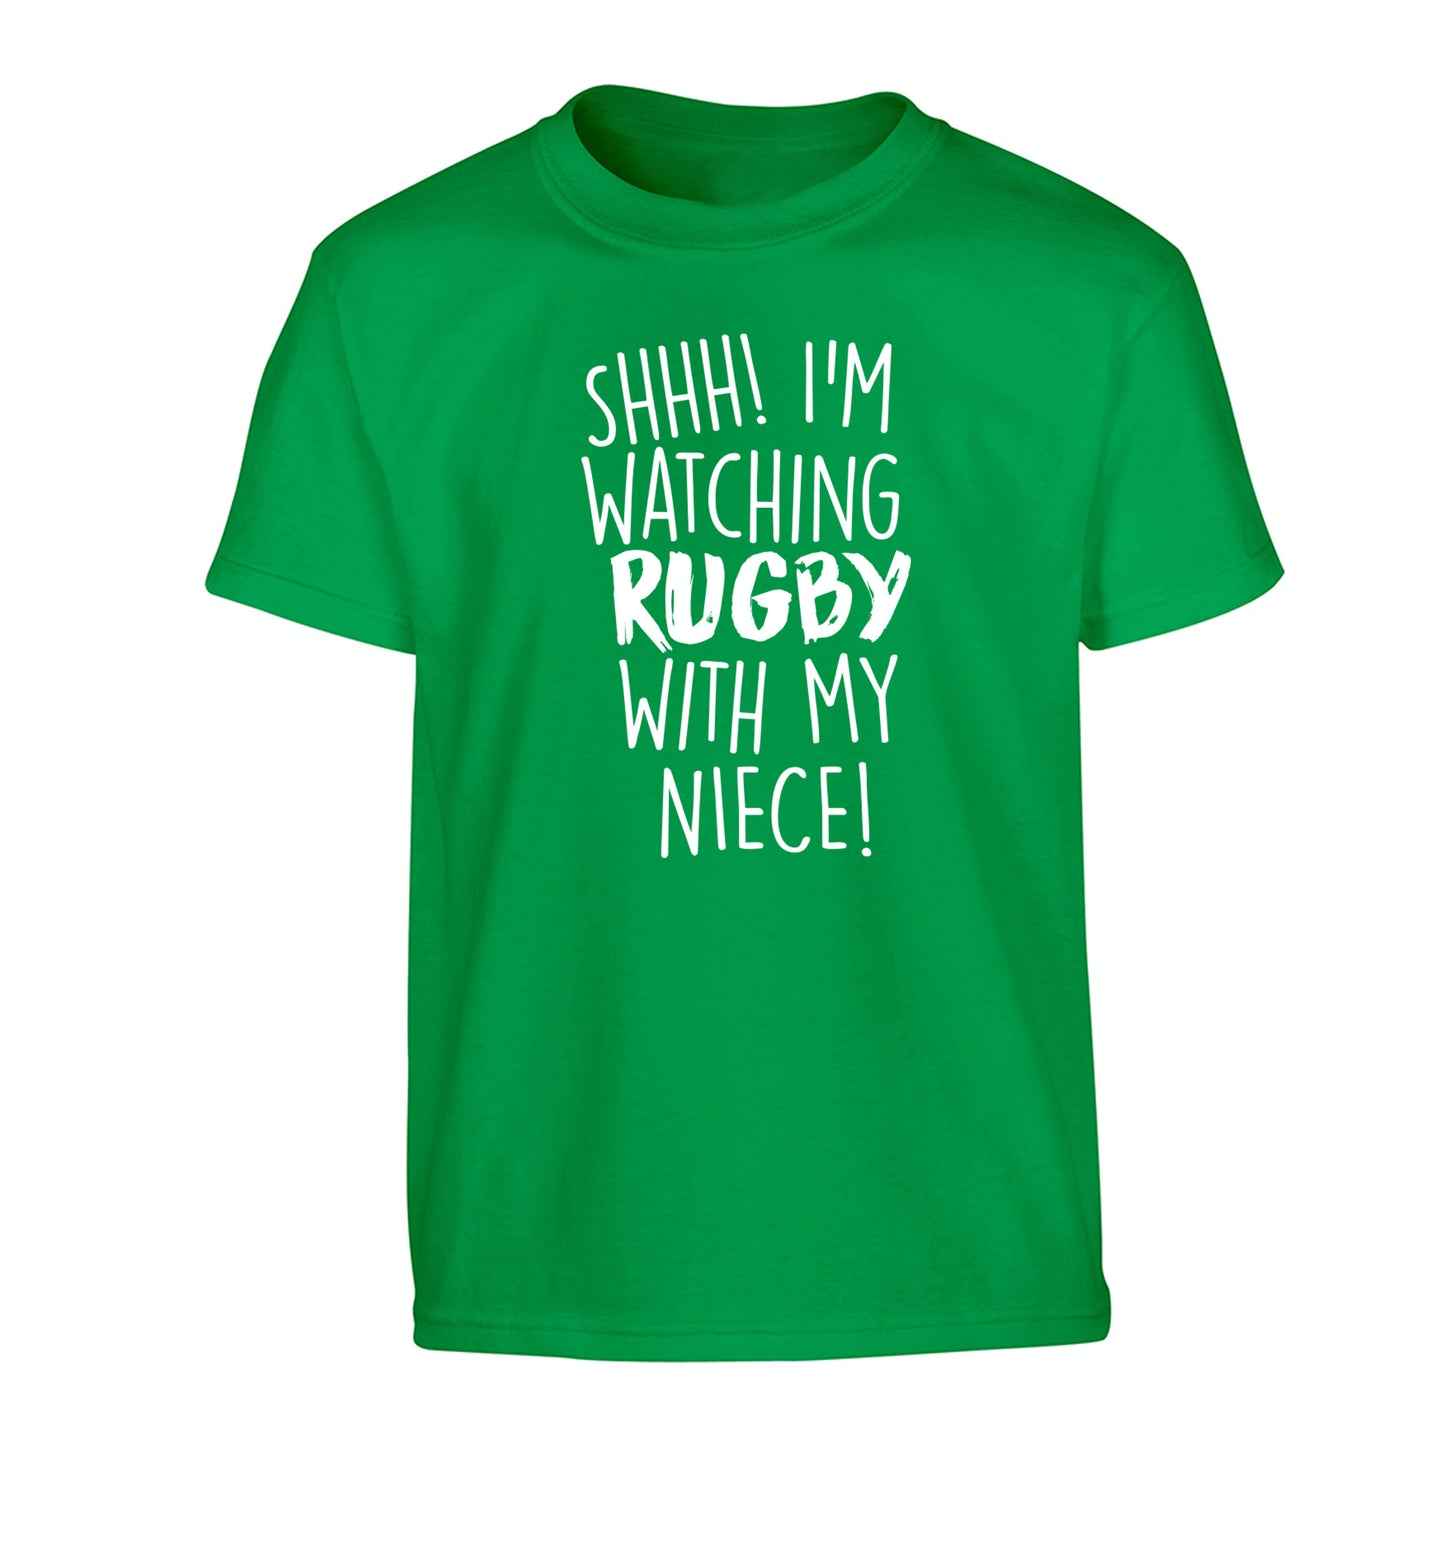 Shh.. I'm watching rugby with my niece Children's green Tshirt 12-13 Years